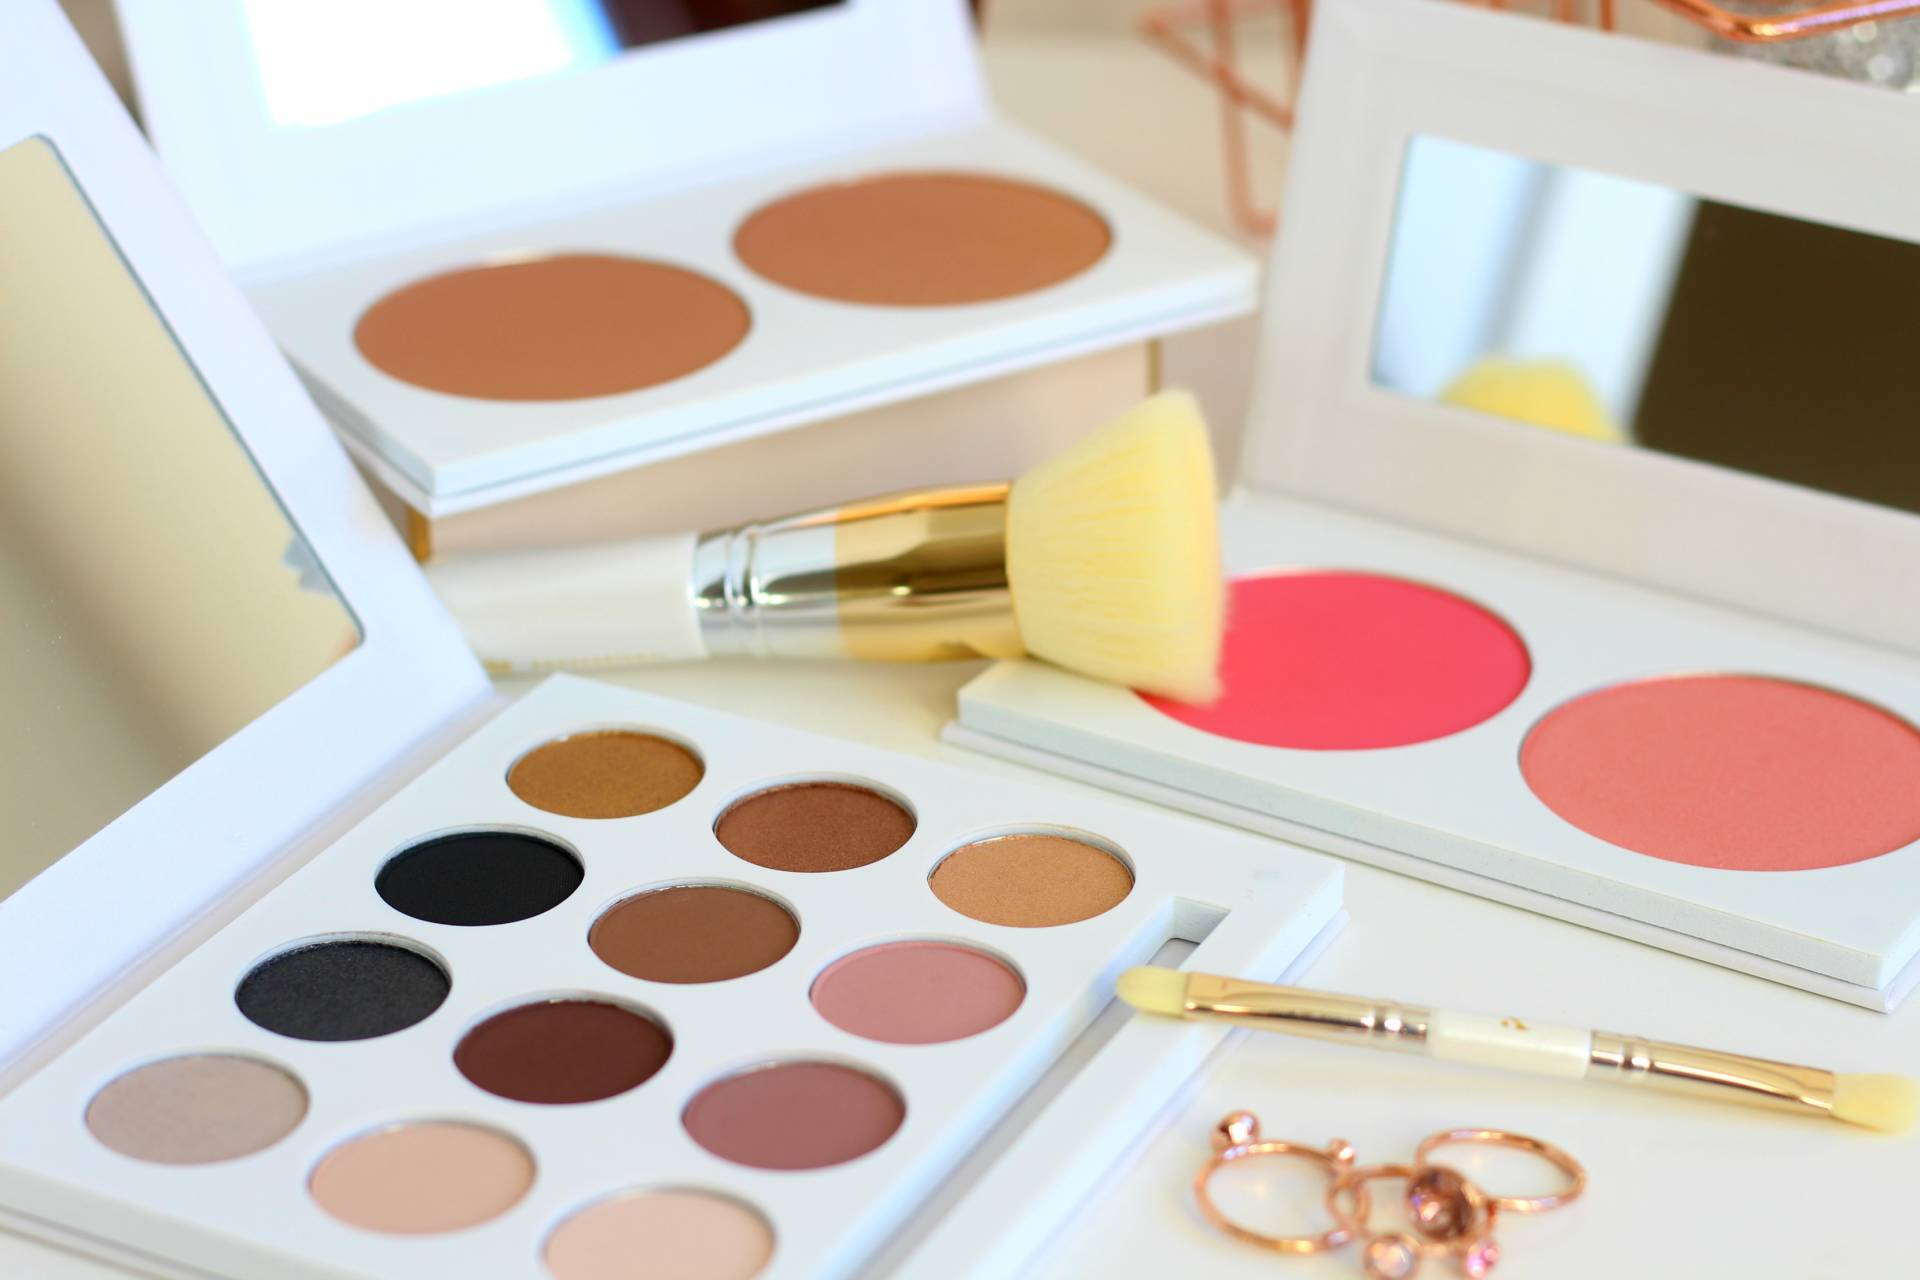 Upping the glamour with XIP professional